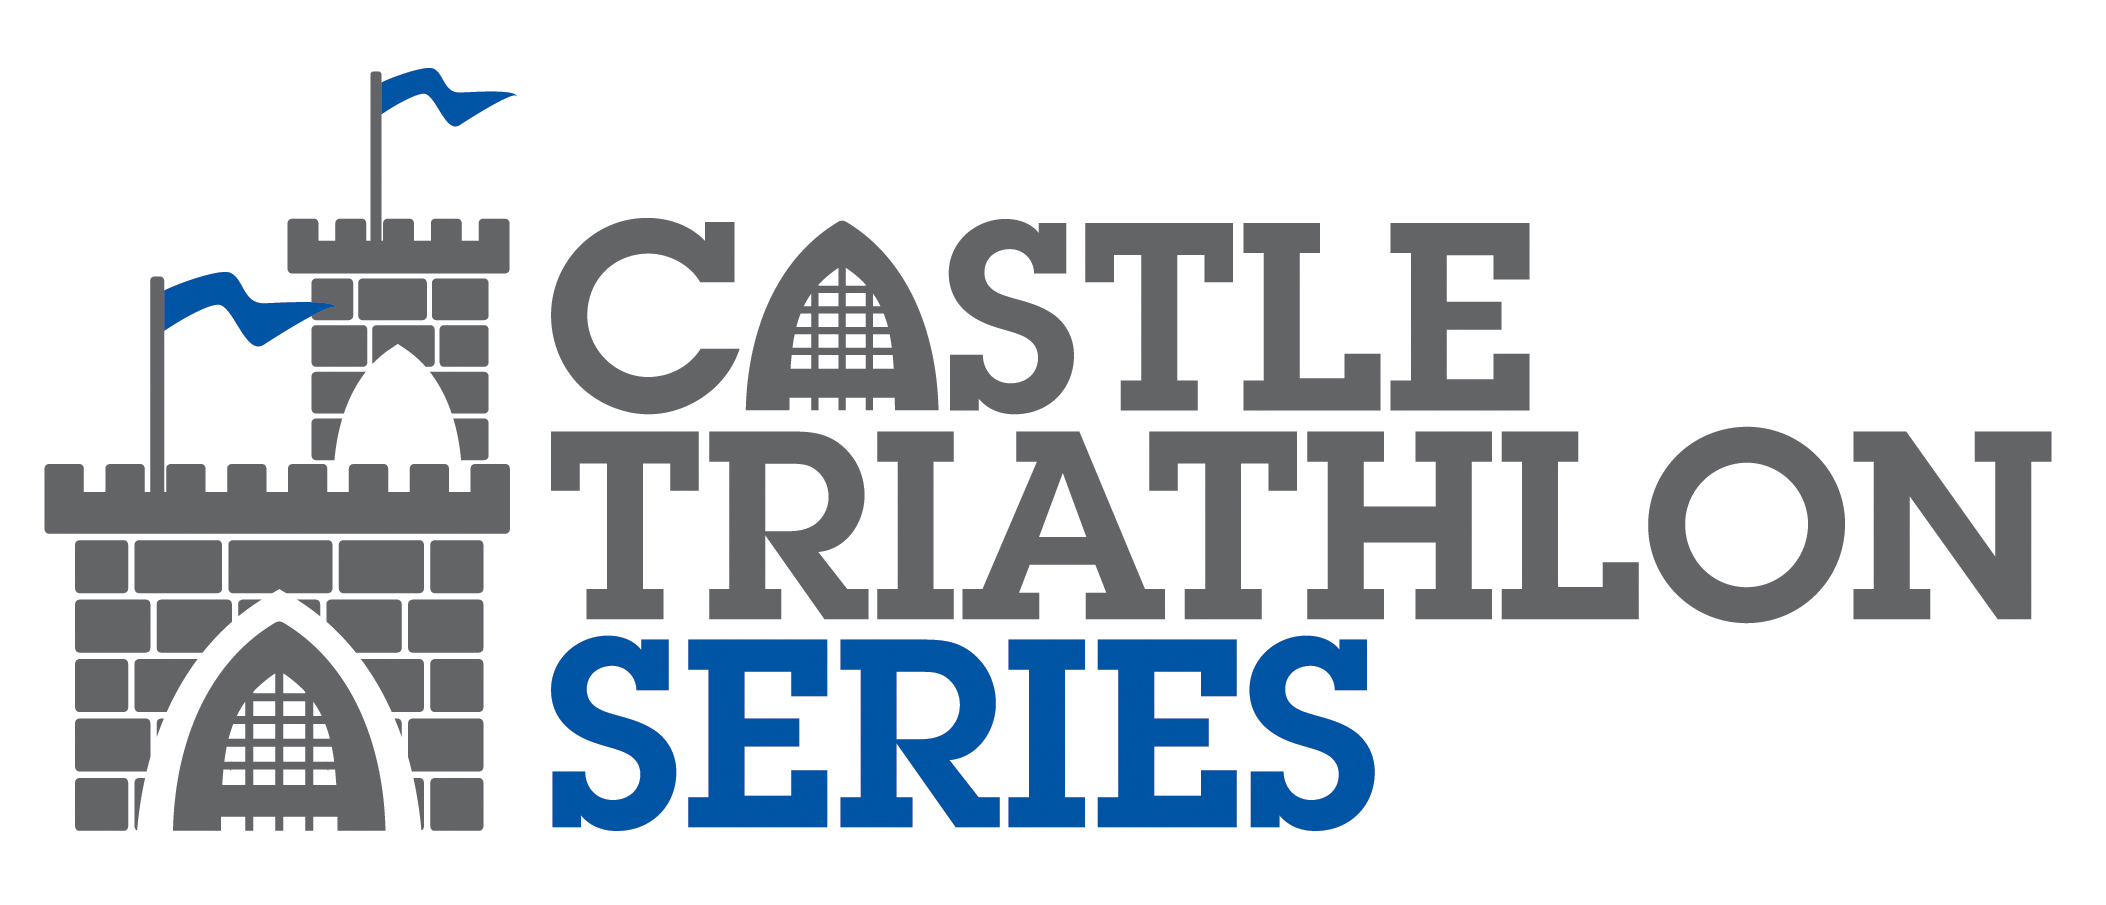 Château de Chantilly Castle Triathlon 2021